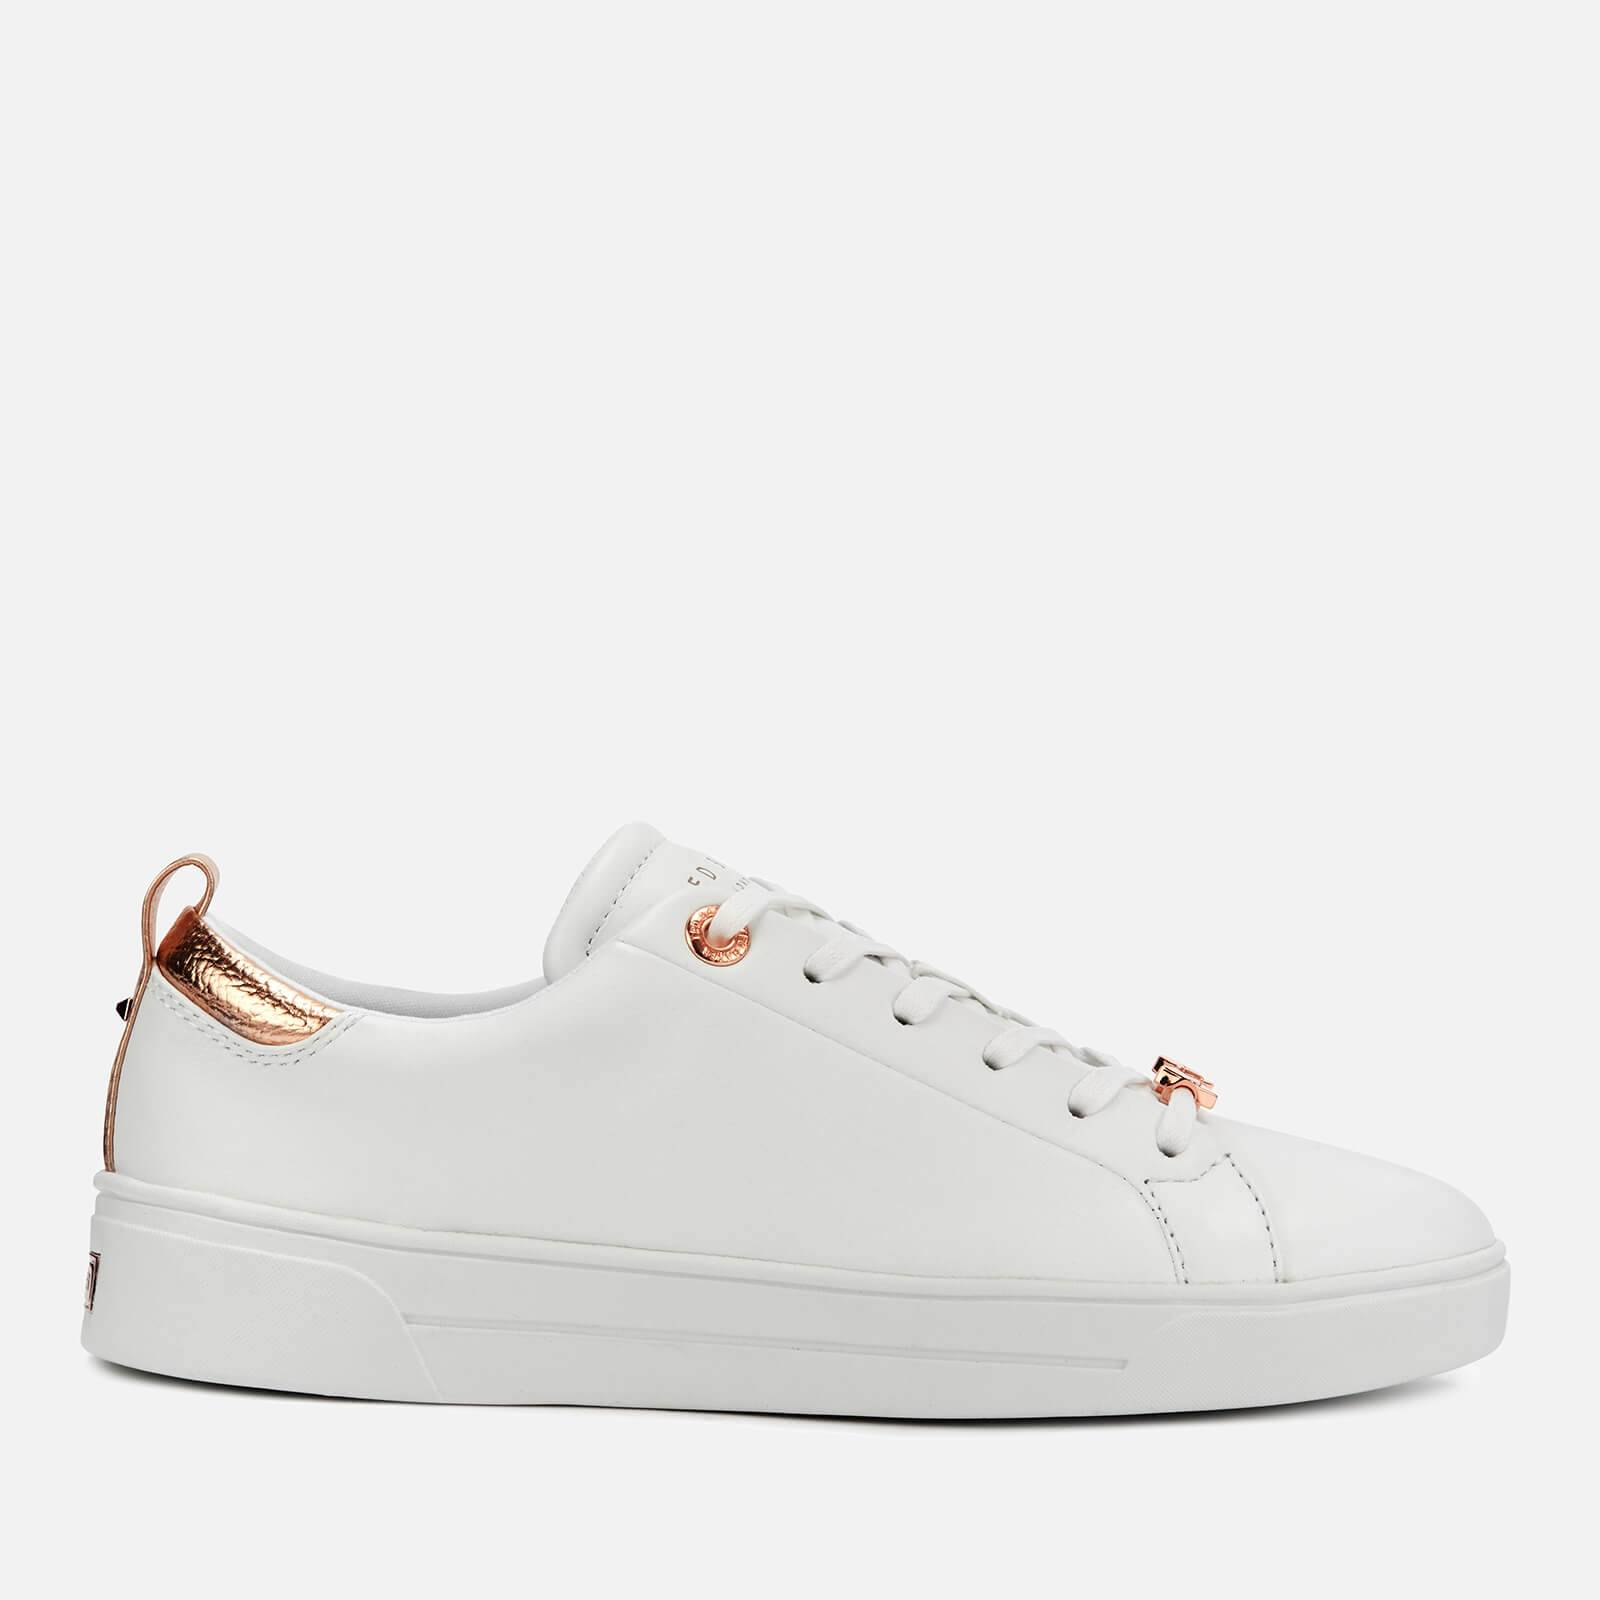 Ted Baker Women's Gielli Leather Low Top Trainers - White/White - UK 8 - White